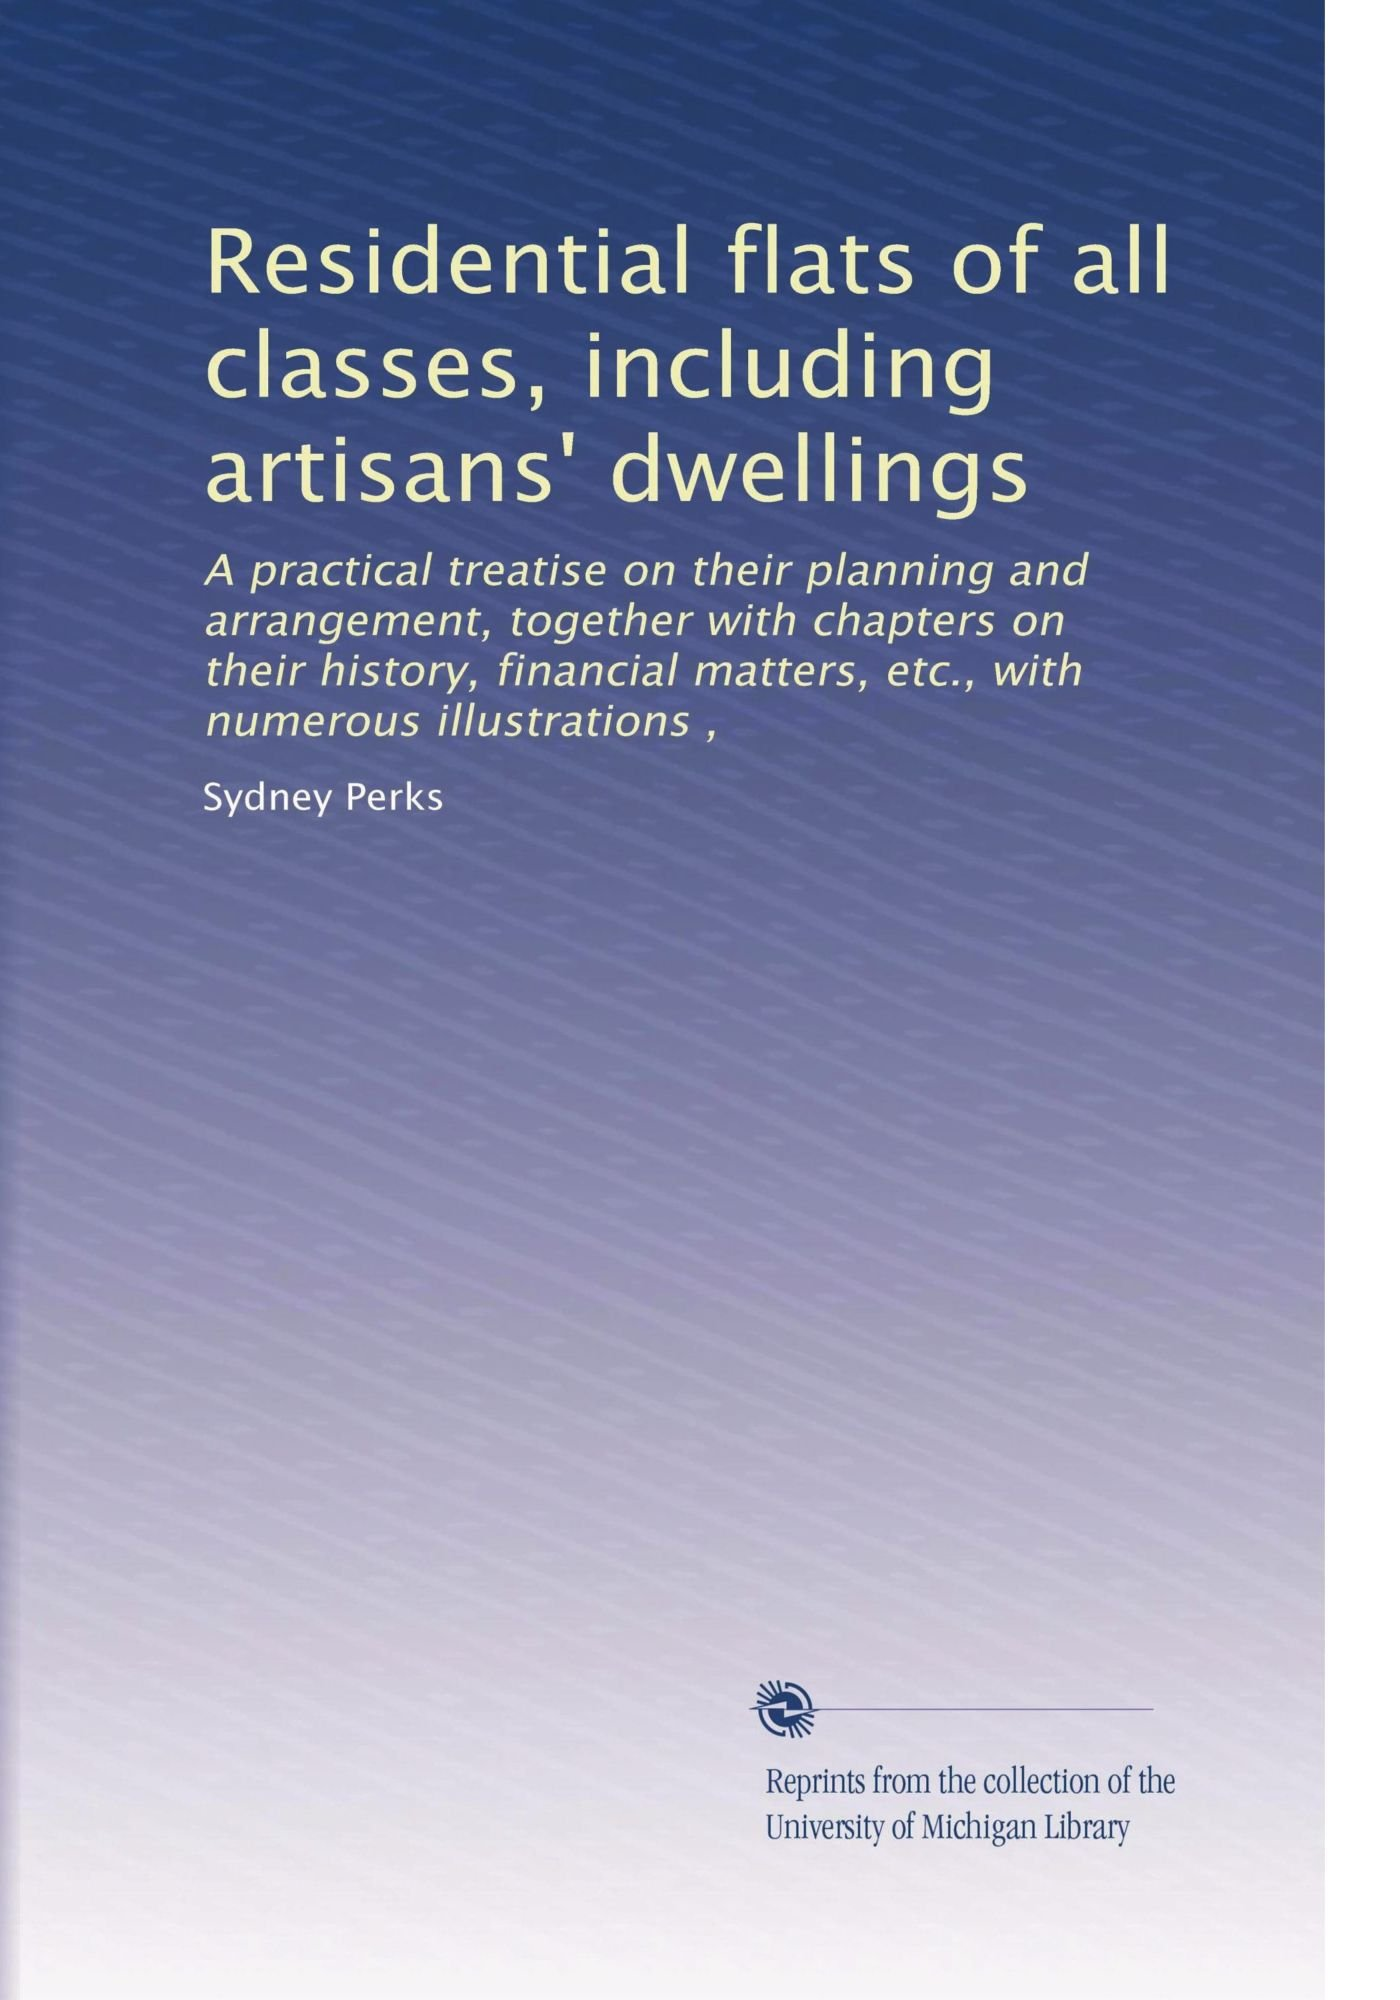 Residential flats of all classes, including artisans' dwellings: A practical treatise on their planning and arrangement, together with chapters on ... matters, etc., with numerous illustrations , ebook